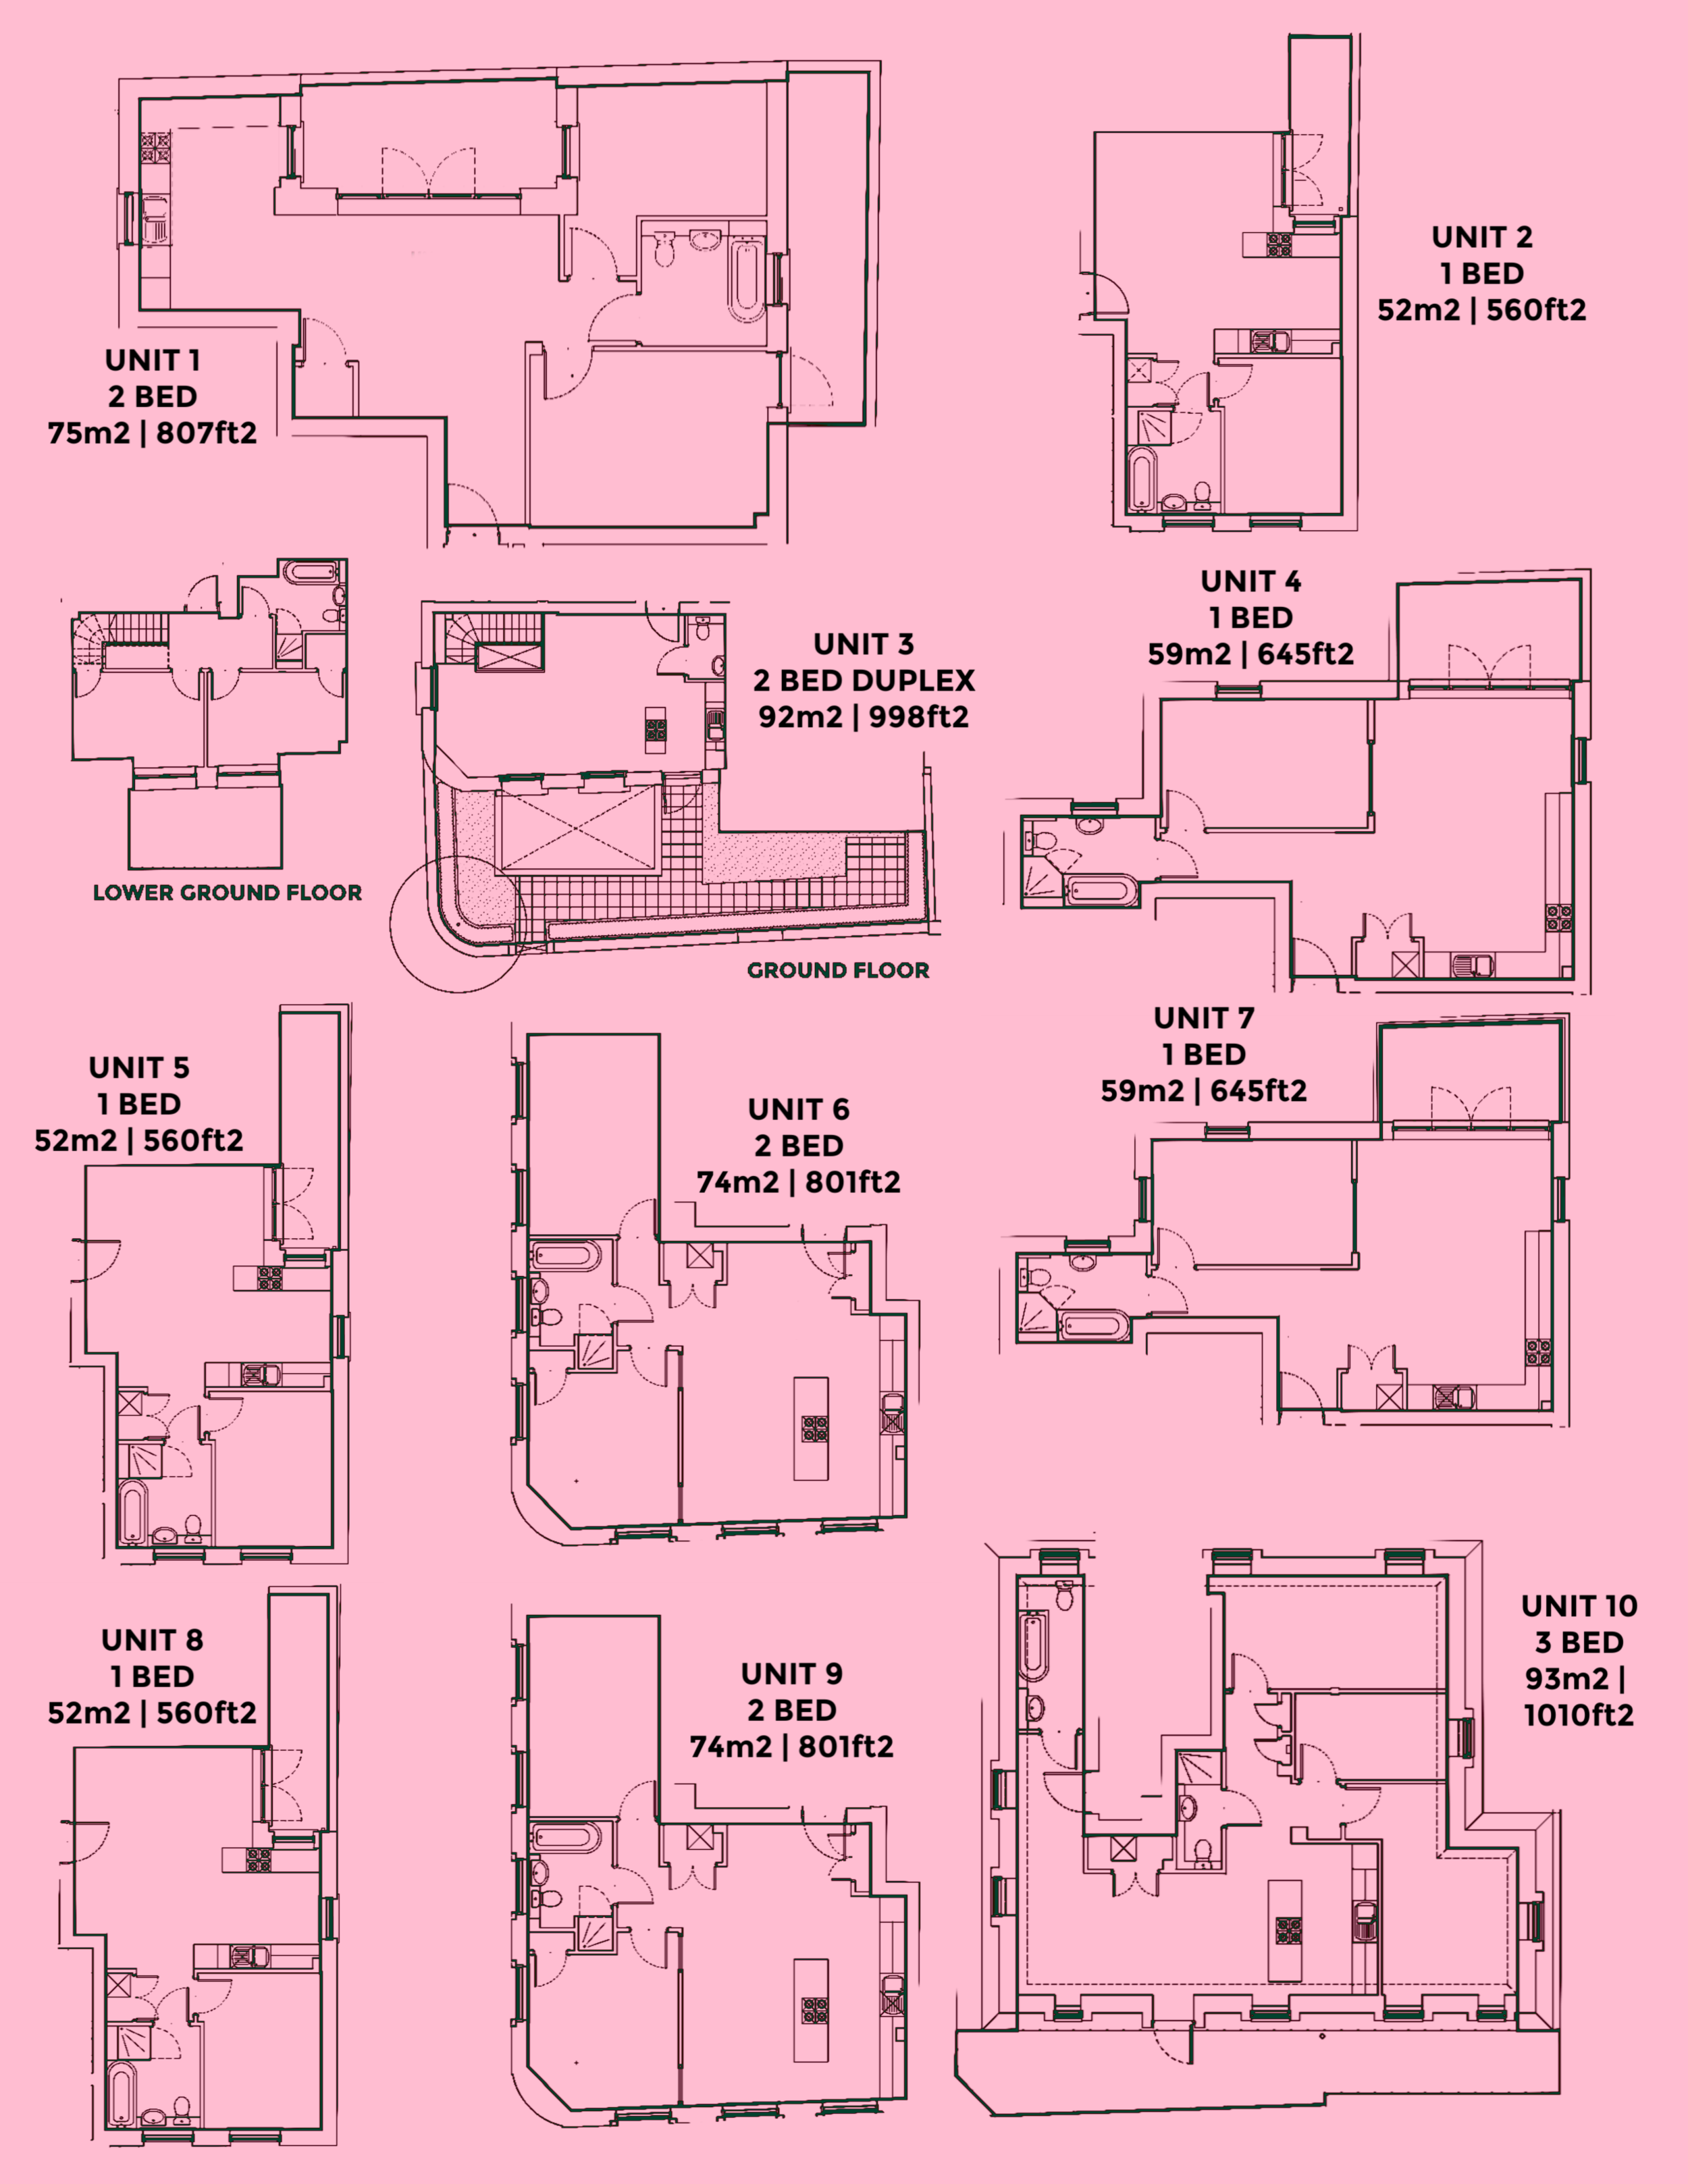 Floorplans. (3).png